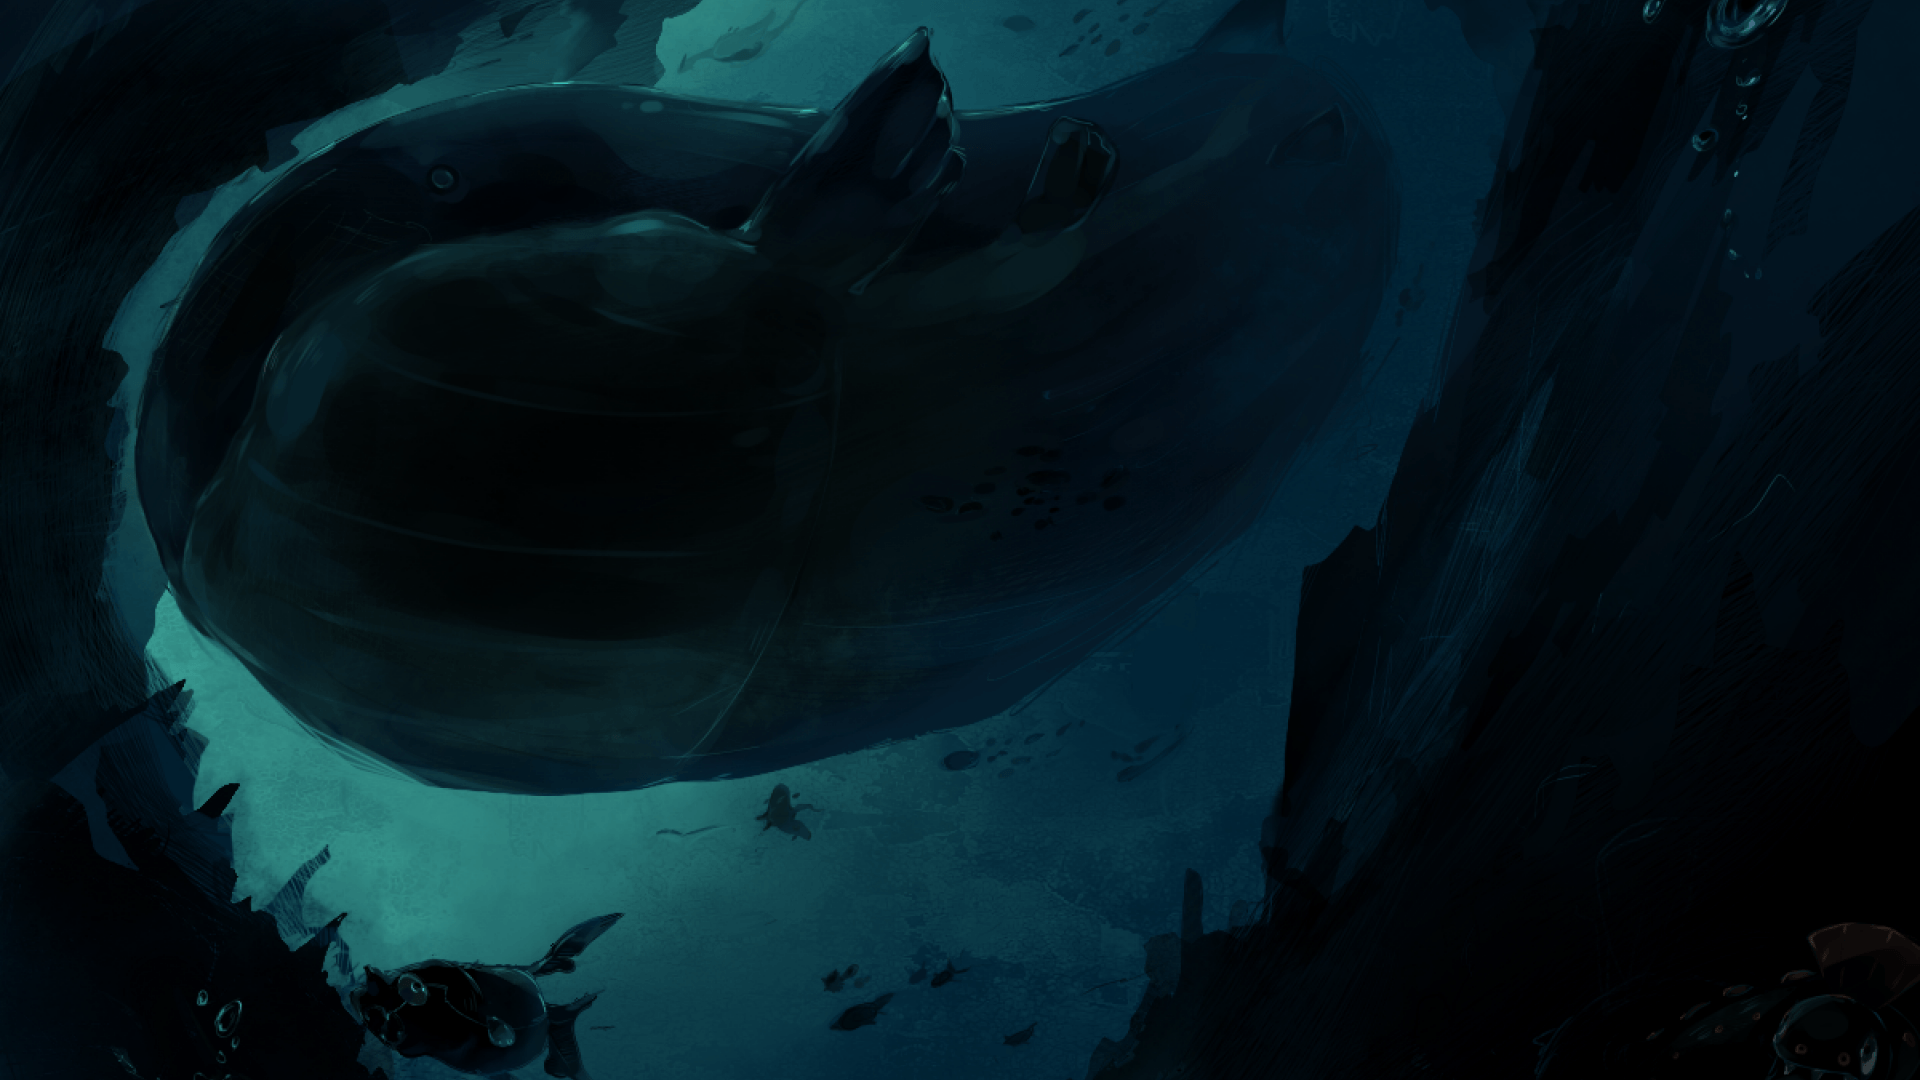 ScreenHeaven: Pokemon Wailord underwater desktop and mobile backgrounds